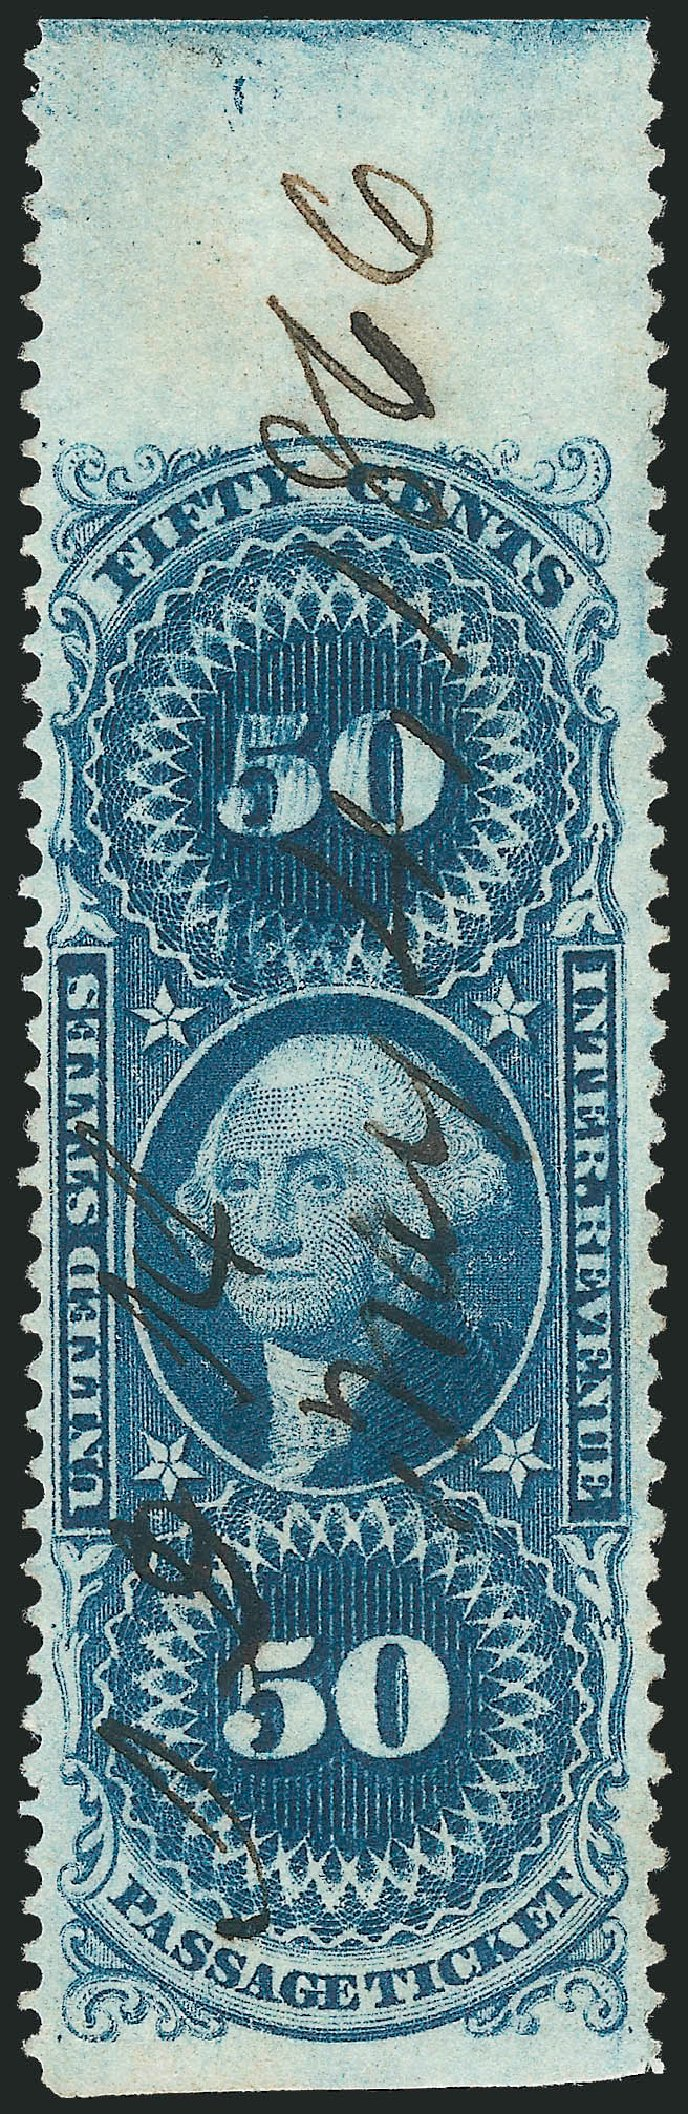 Costs of US Stamp Scott Cat. # R61 - 50c 1862 Revenue Passage Ticket. Robert Siegel Auction Galleries, Nov 2011, Sale 1015, Lot 60